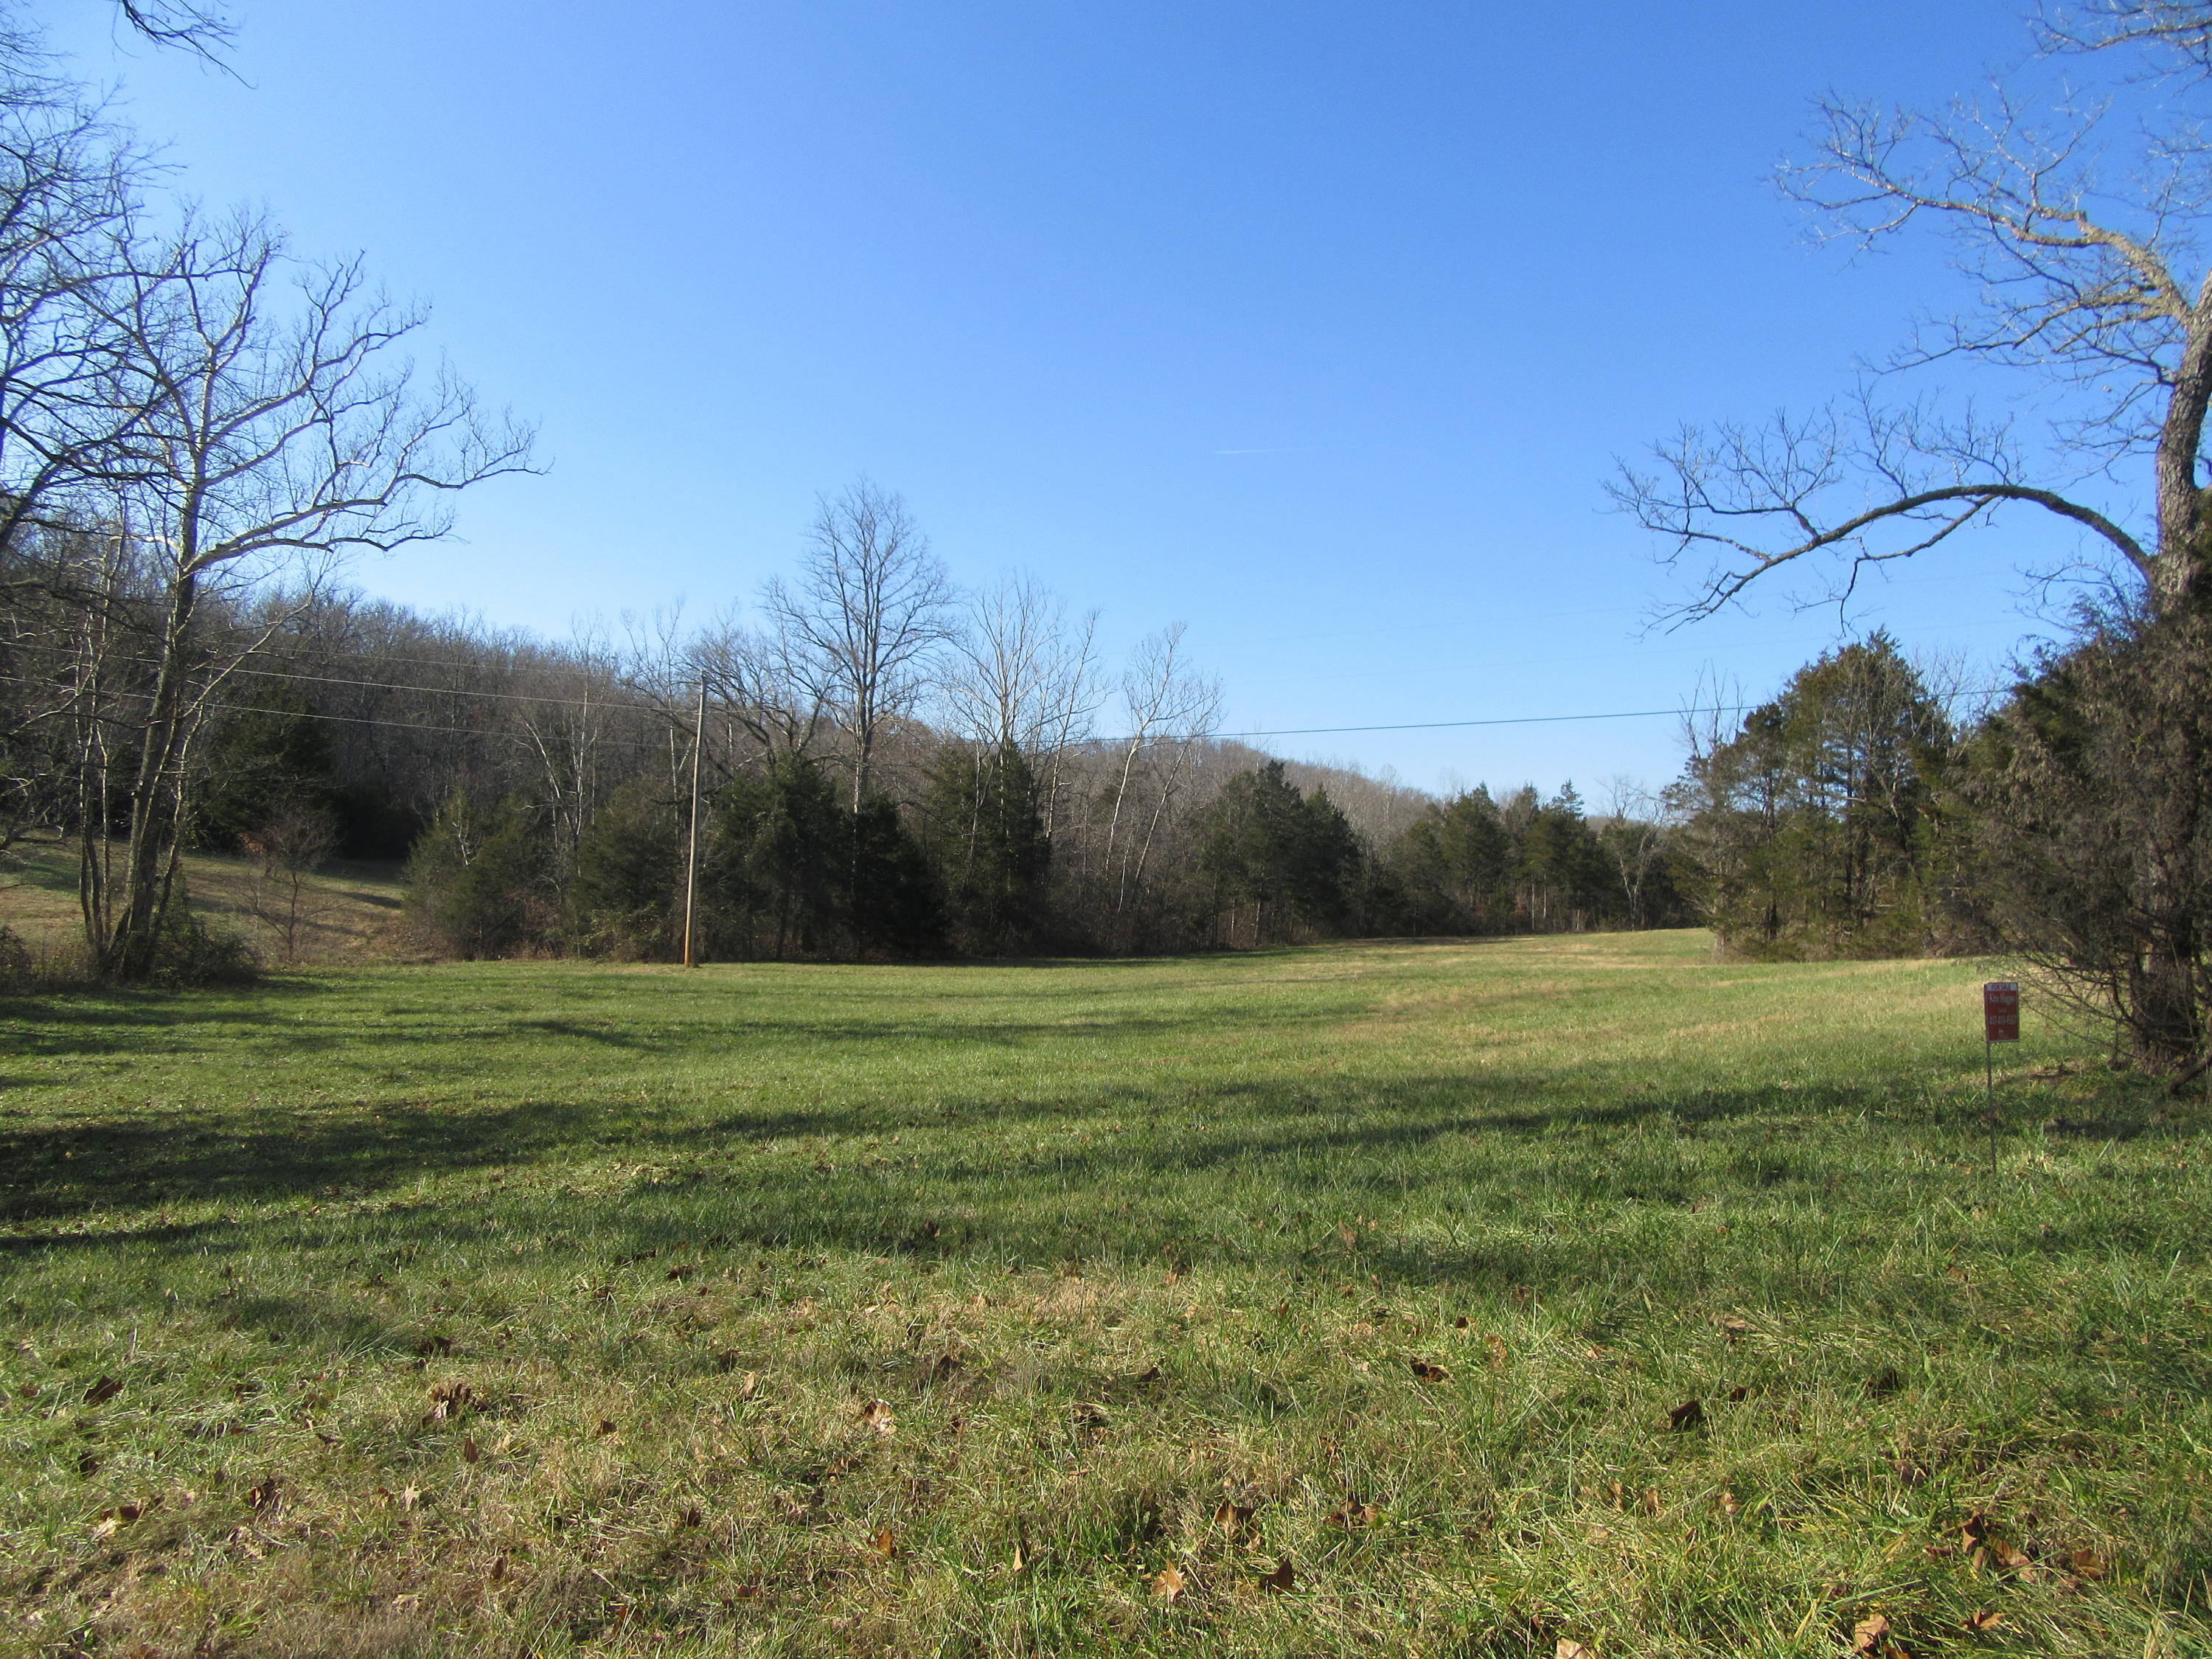 Tbd Dry Hollow Road Saddlebrooke, MO 65630